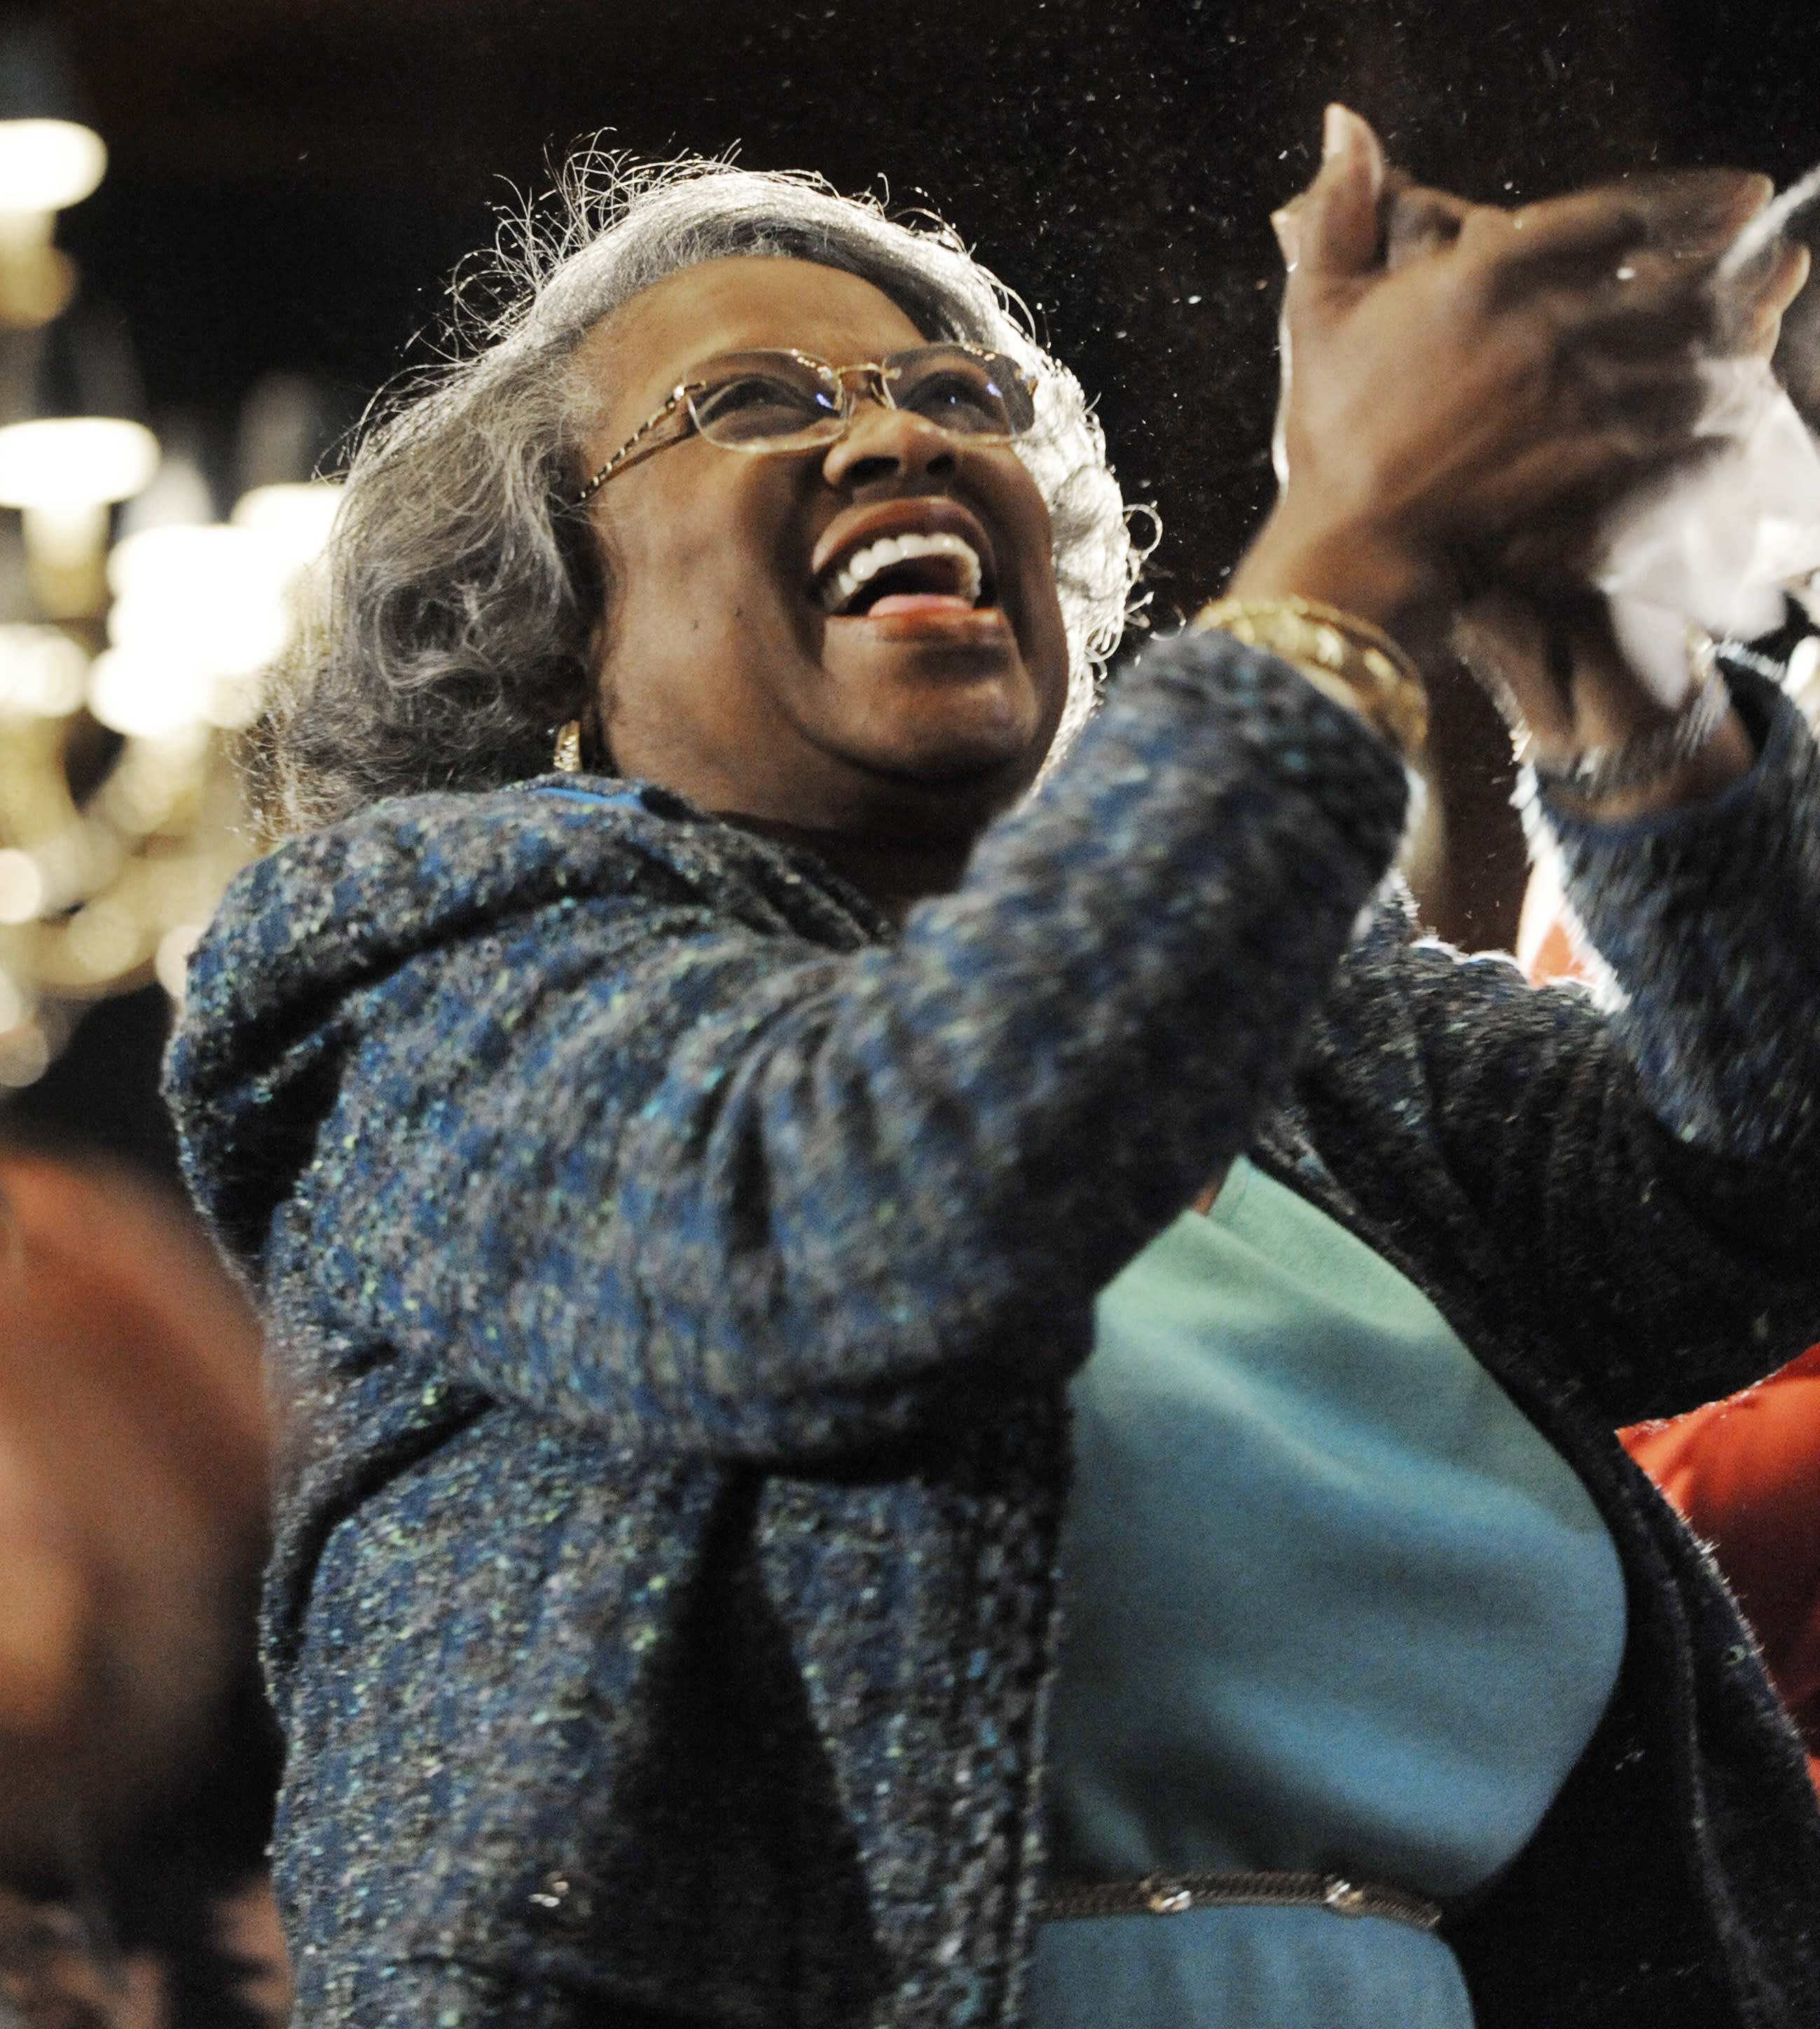 FILE - In this Monday, Jan. 21, 2013 file photo, Juanita Abernathy, widow of civil rights leader Ralph Abernathy, celebrates while watching a live video feed of President Barack Obama's inauguration after speaking at the Union League Club of Chicago in Chicago. Juanita Abernathy, who wrote the business plan for the 1955 Montgomery Bus Boycott and took other influential steps in helping to build the American civil rights movement, has died. She was 88. Family spokesman James Peterson confirmed Abernathy died Thursday, Sept. 12, 2019 at Piedmont Hospital in Atlanta following complications from a stroke. (AP Photo/Paul Beaty, File)